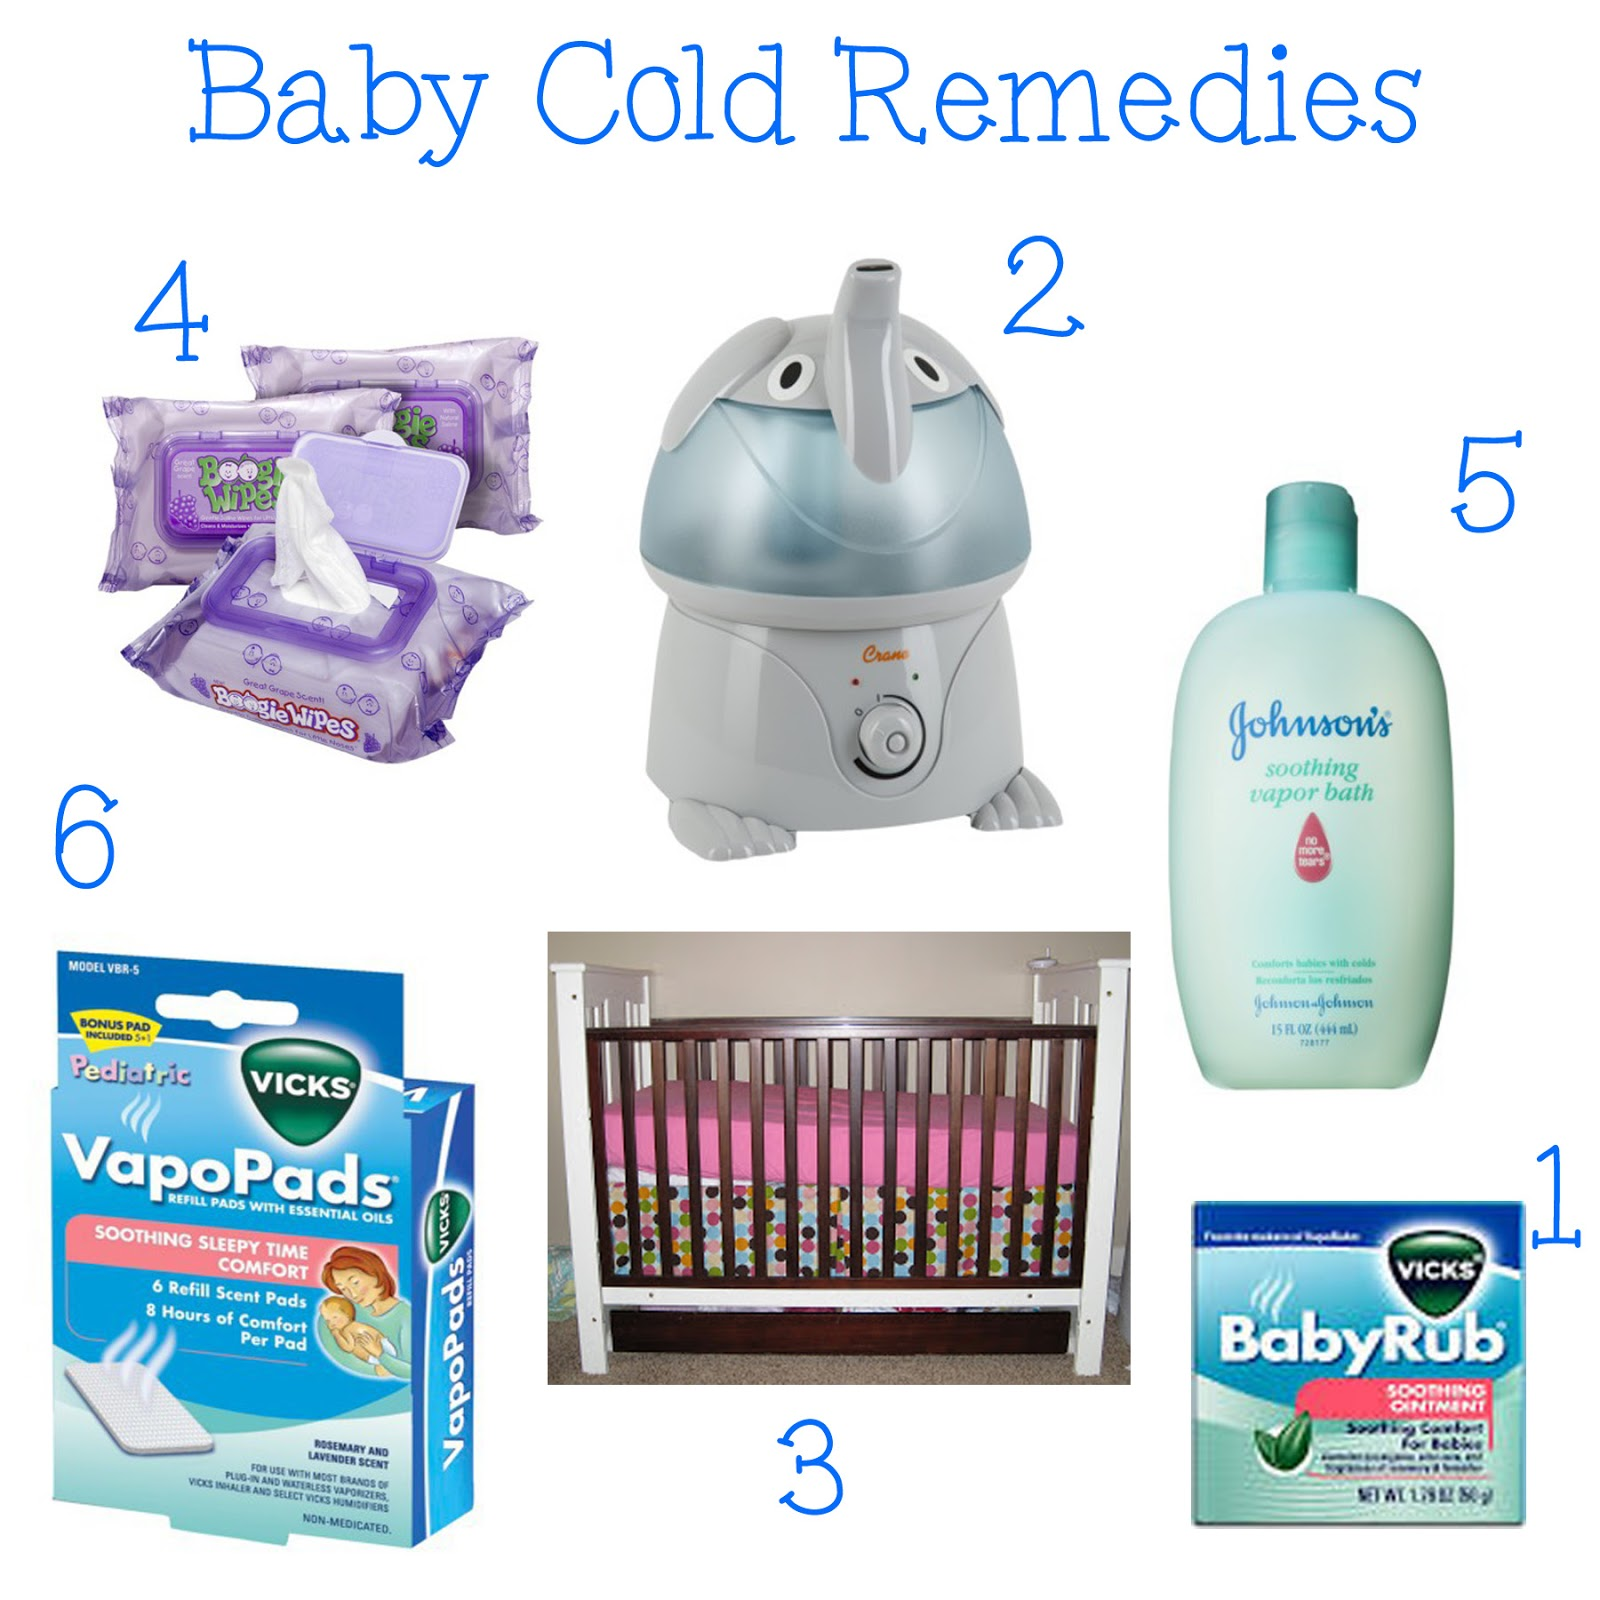 Baby cold remedies. #1477B7